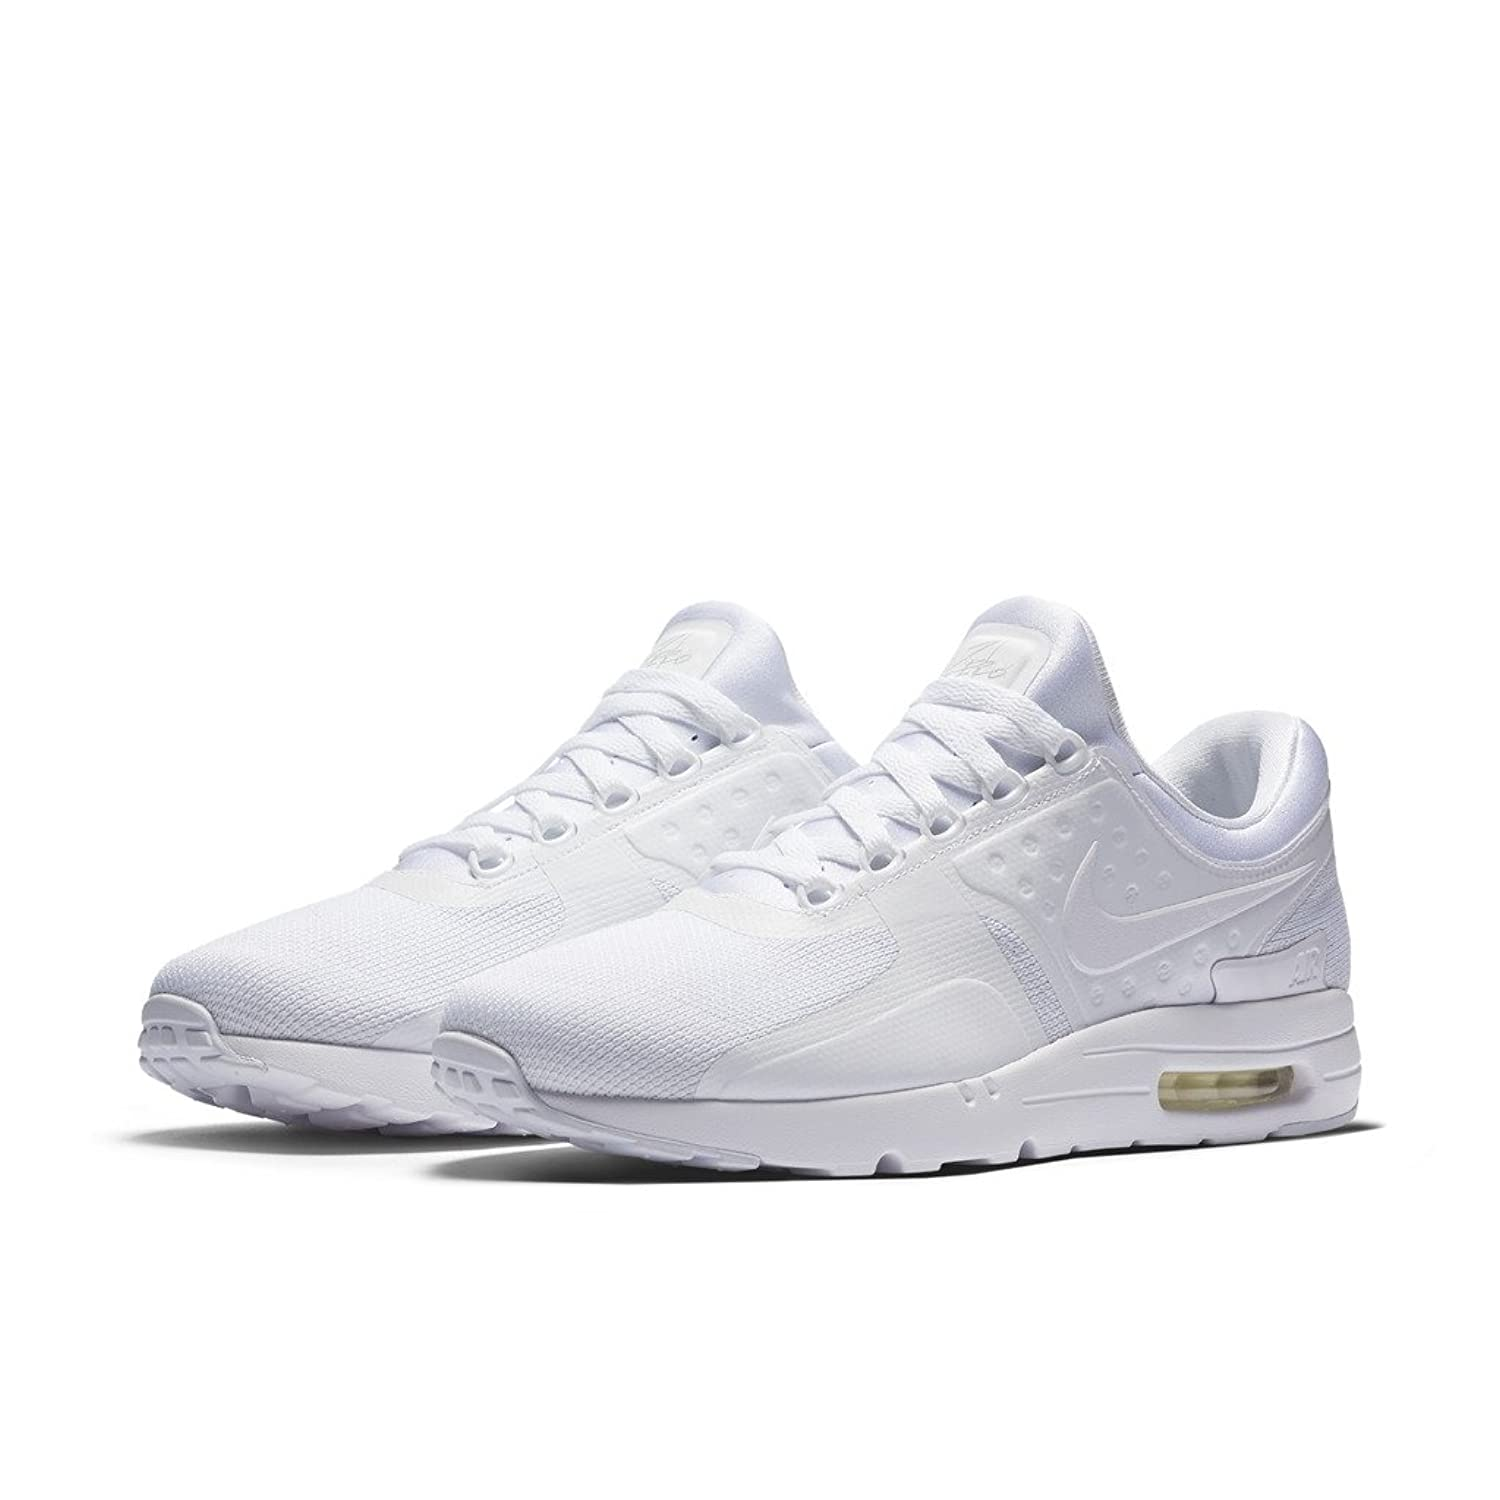 watch abcce 799c9 Amazon.com | Nike AIR MAX ZERO ESSENTIAL MENS running-shoes ...